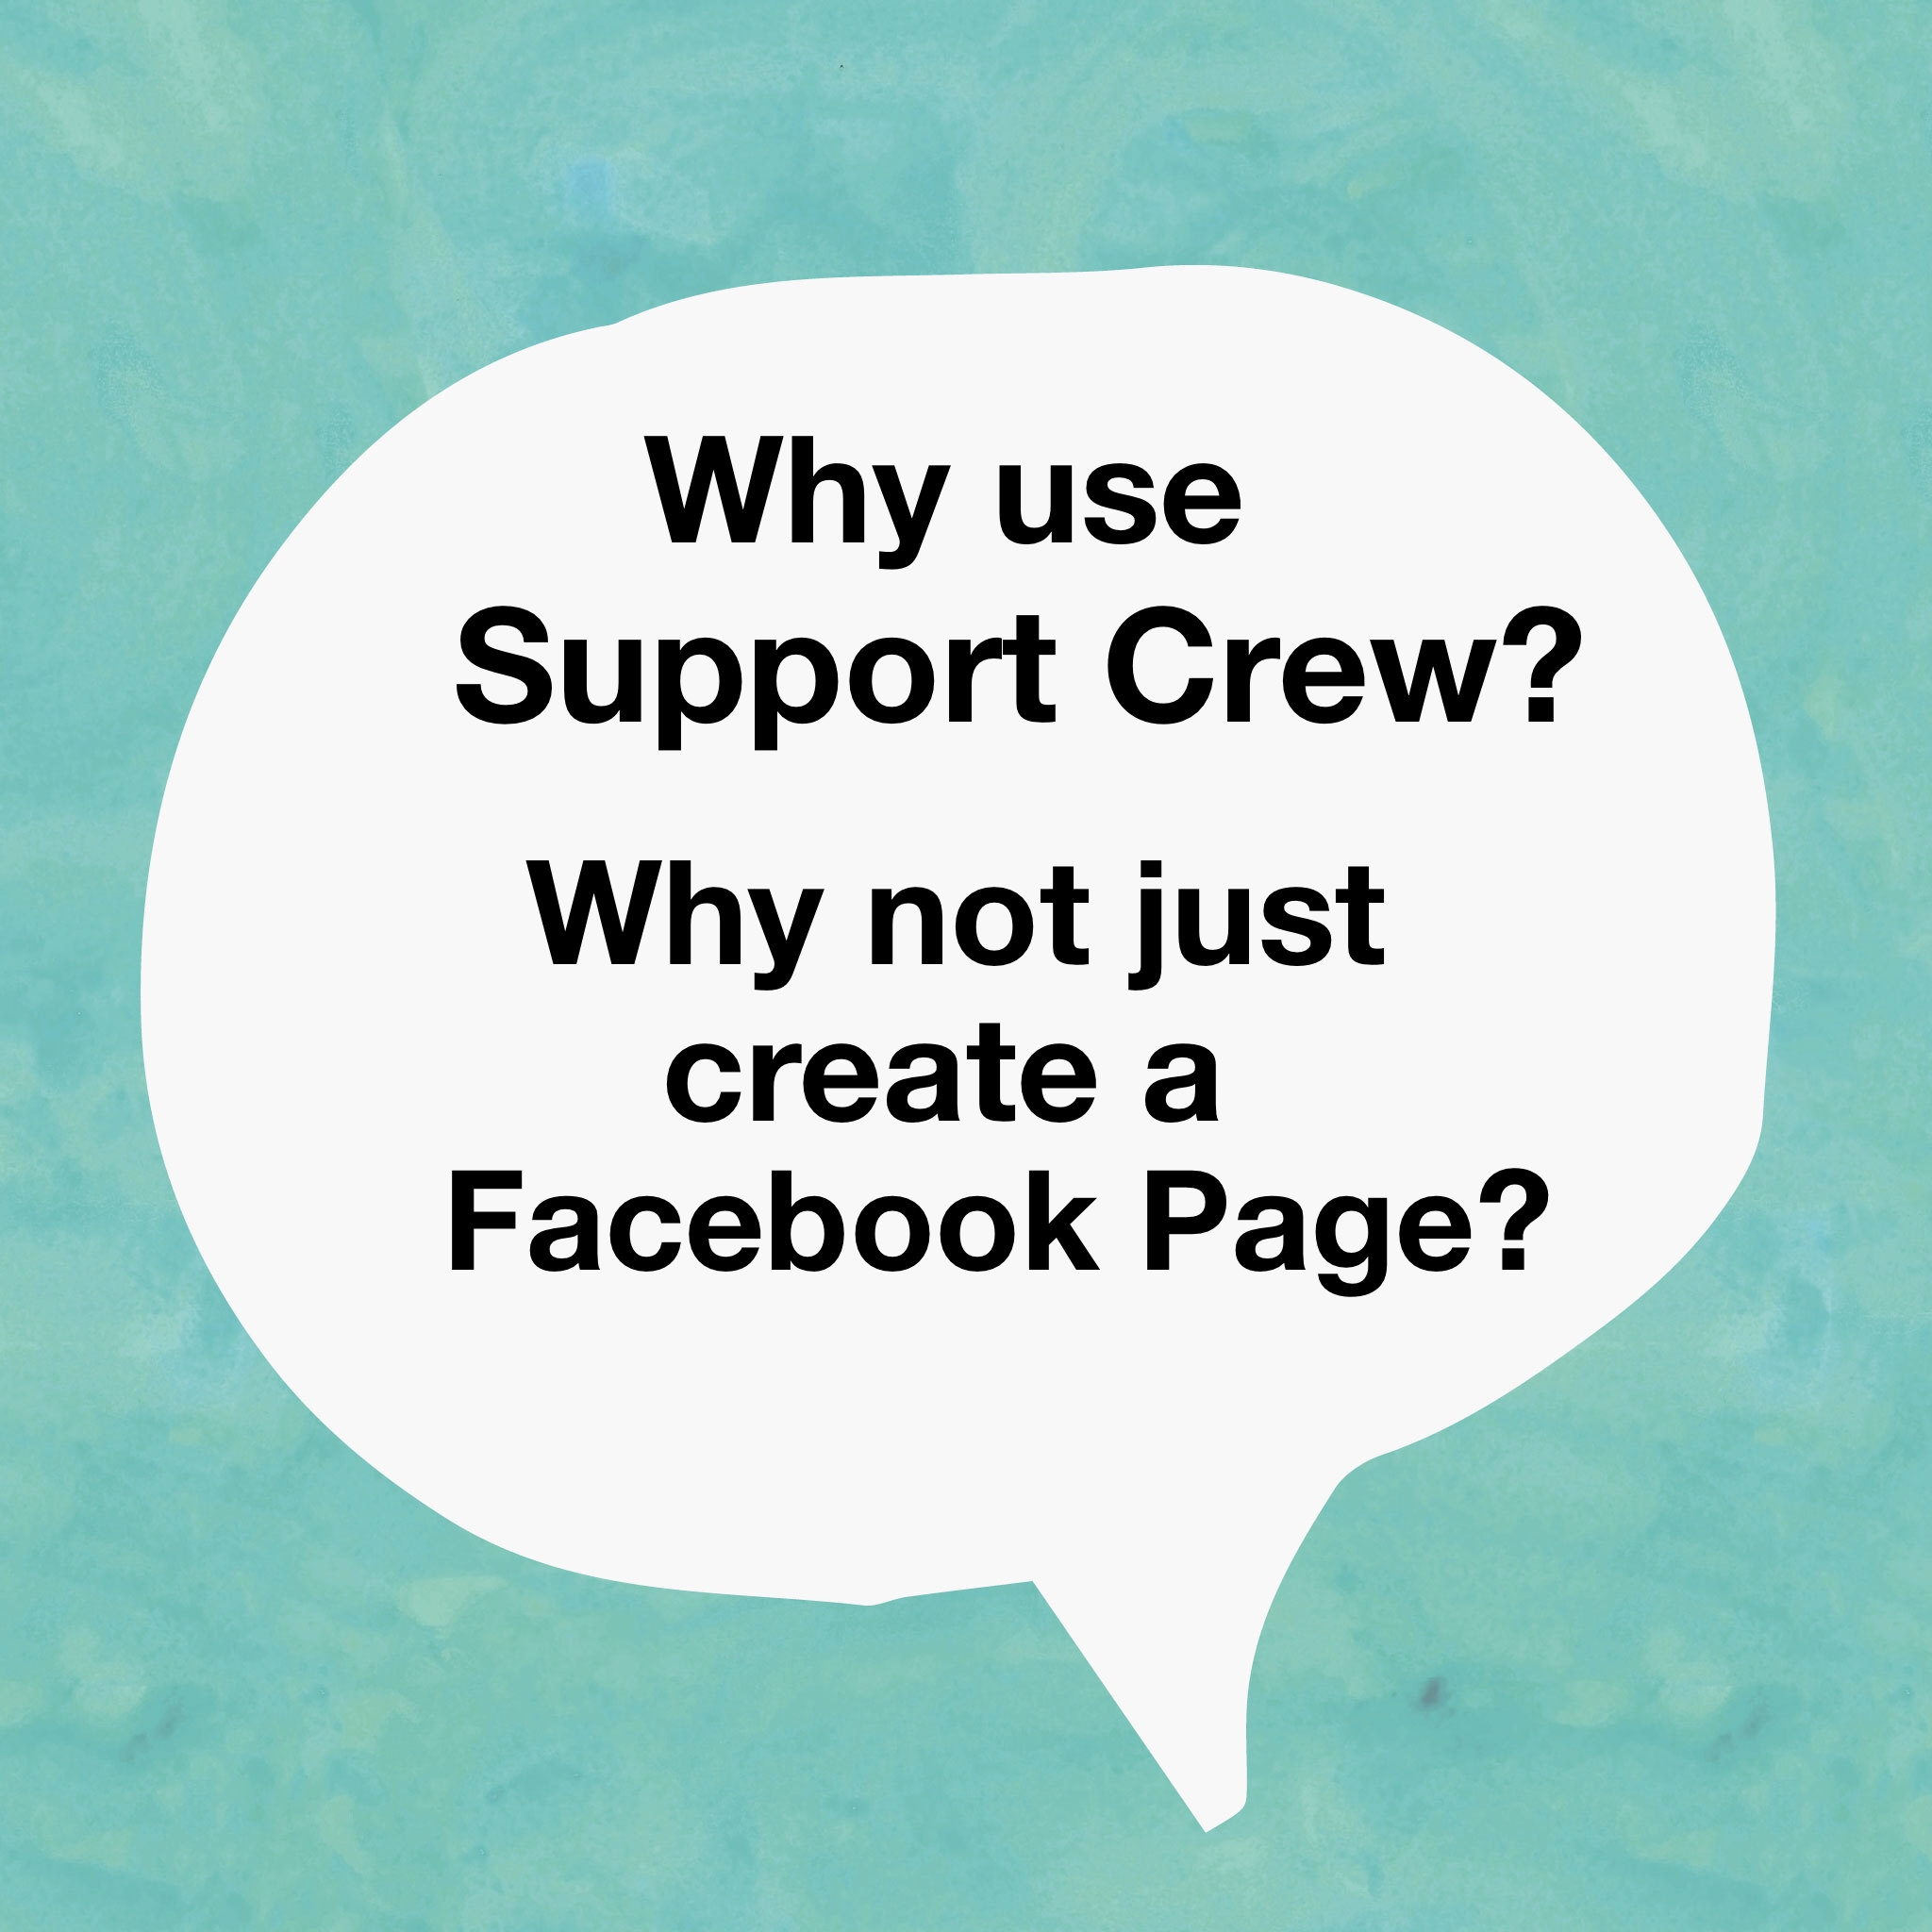 Why Use Support Crew? Why Not Just Use A Facebook Page?